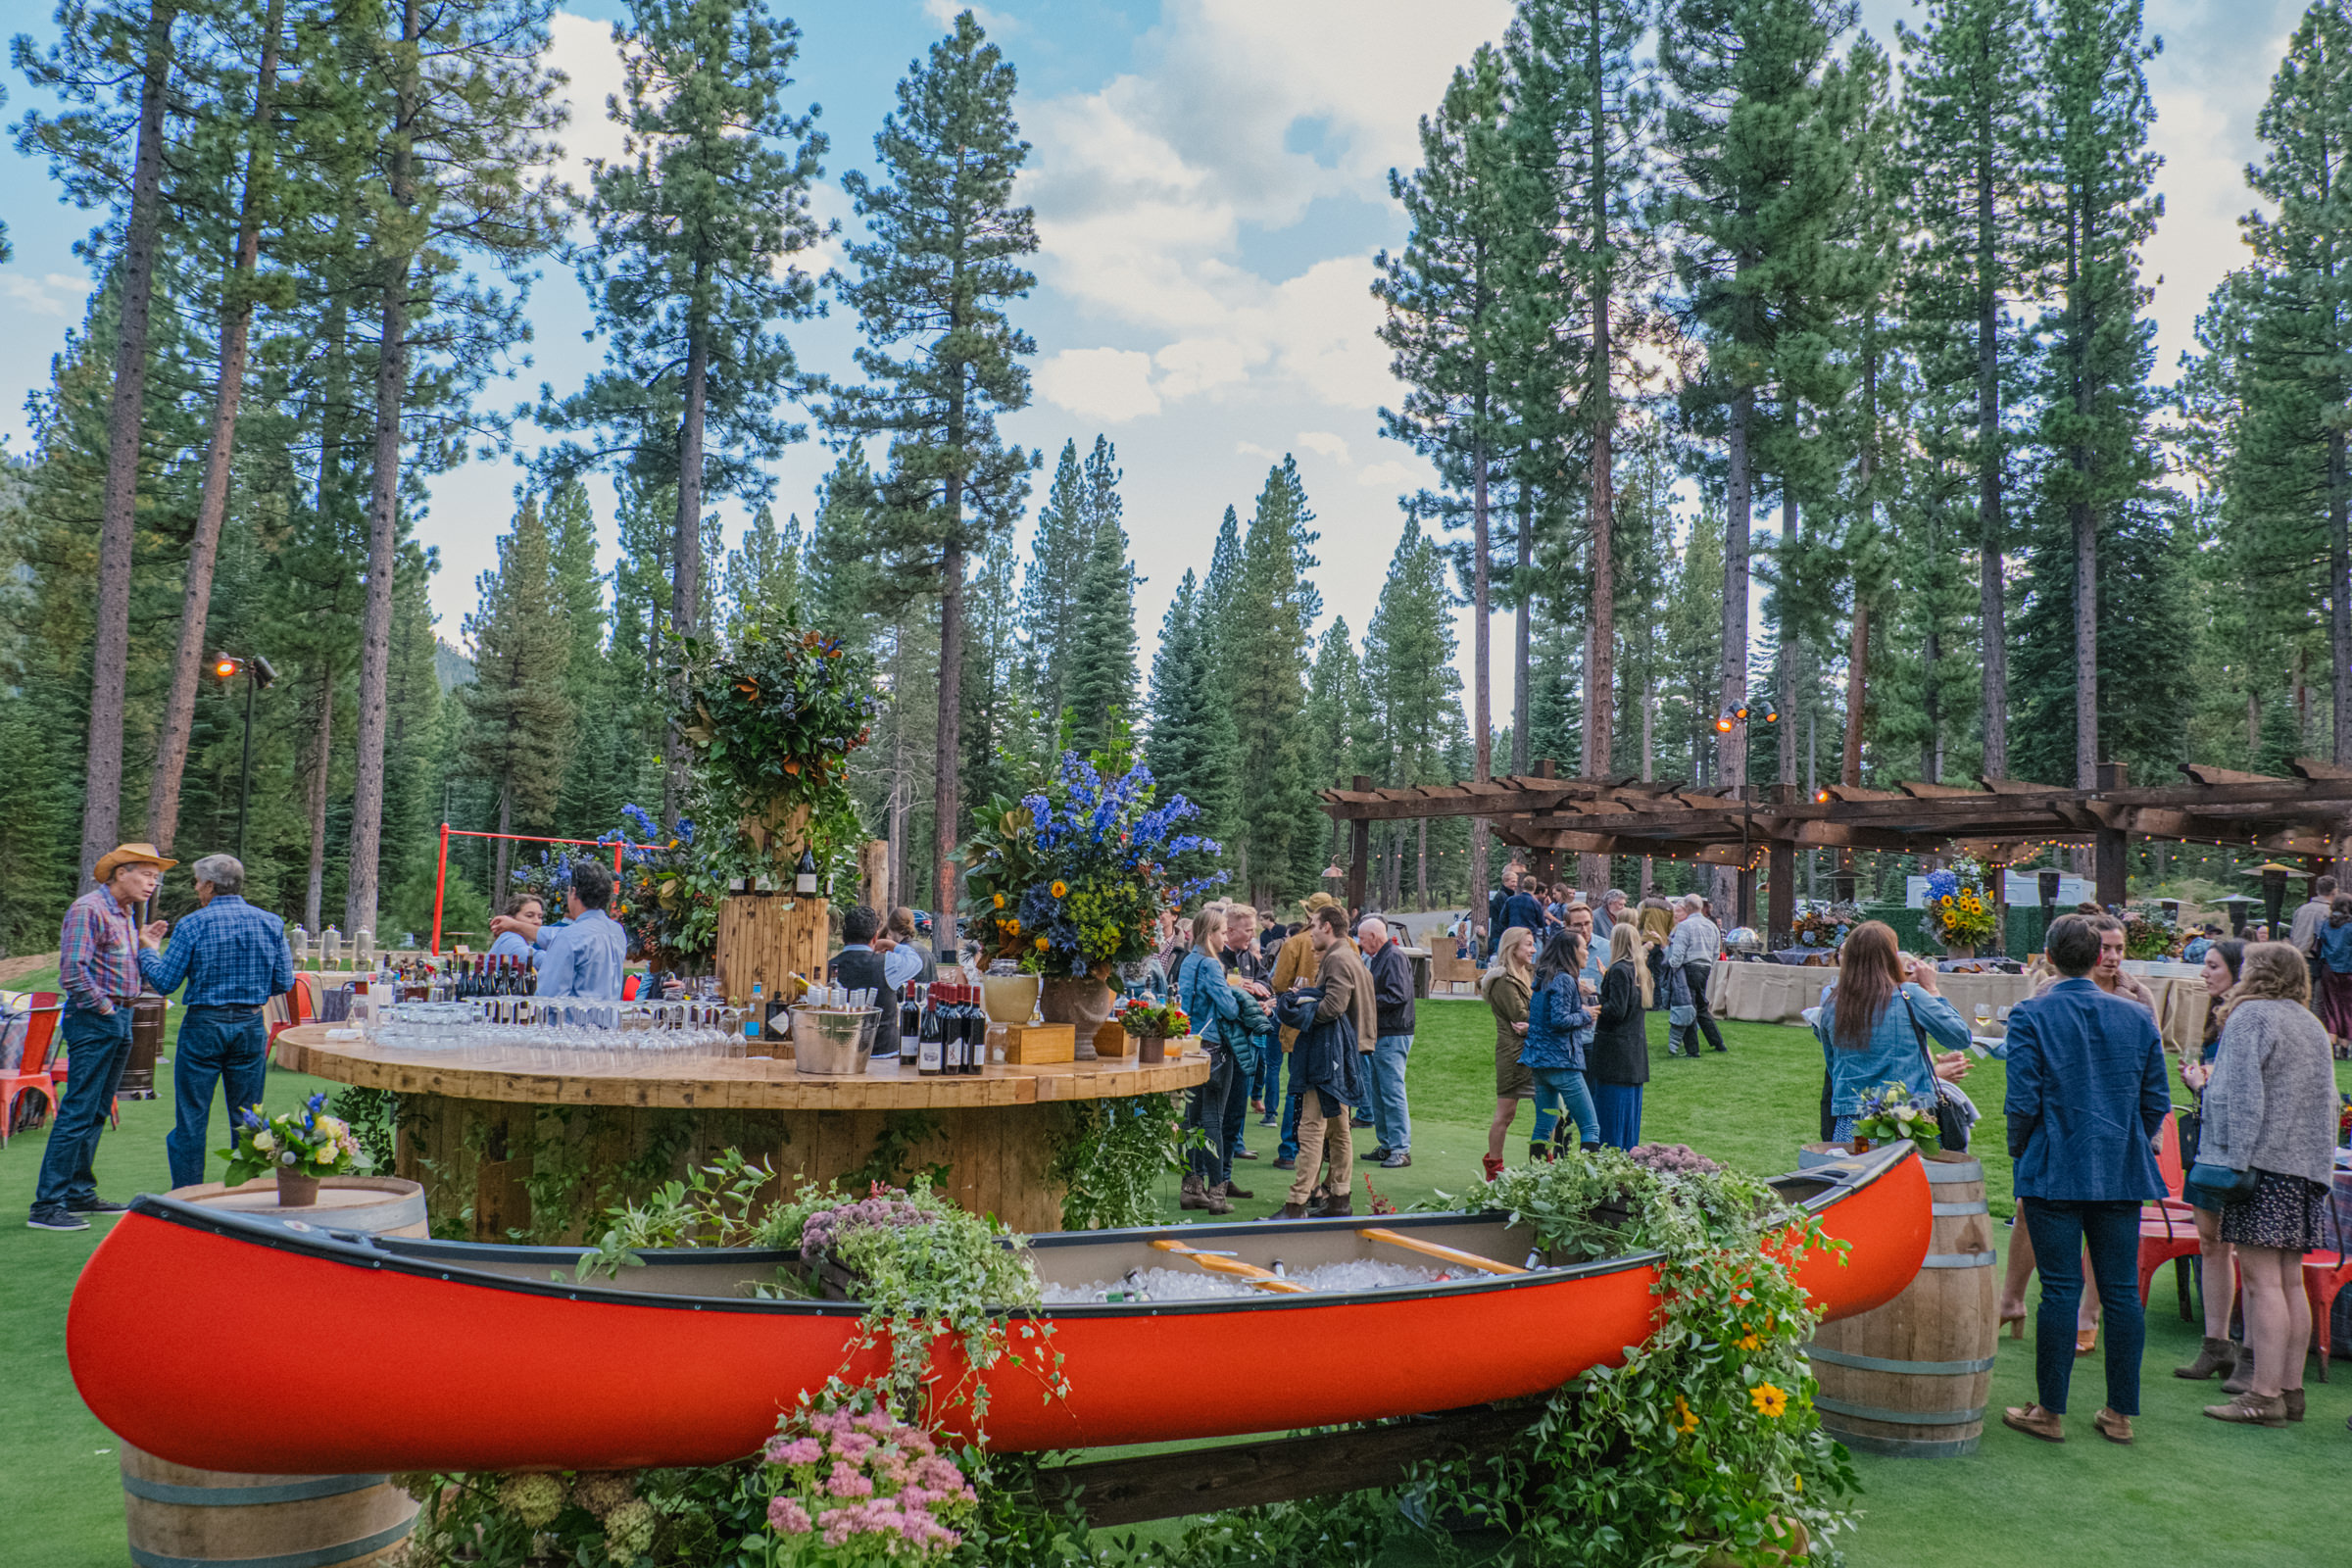 rustic-river-wedding-reception-with-red-canoe-amyandstuart-photography